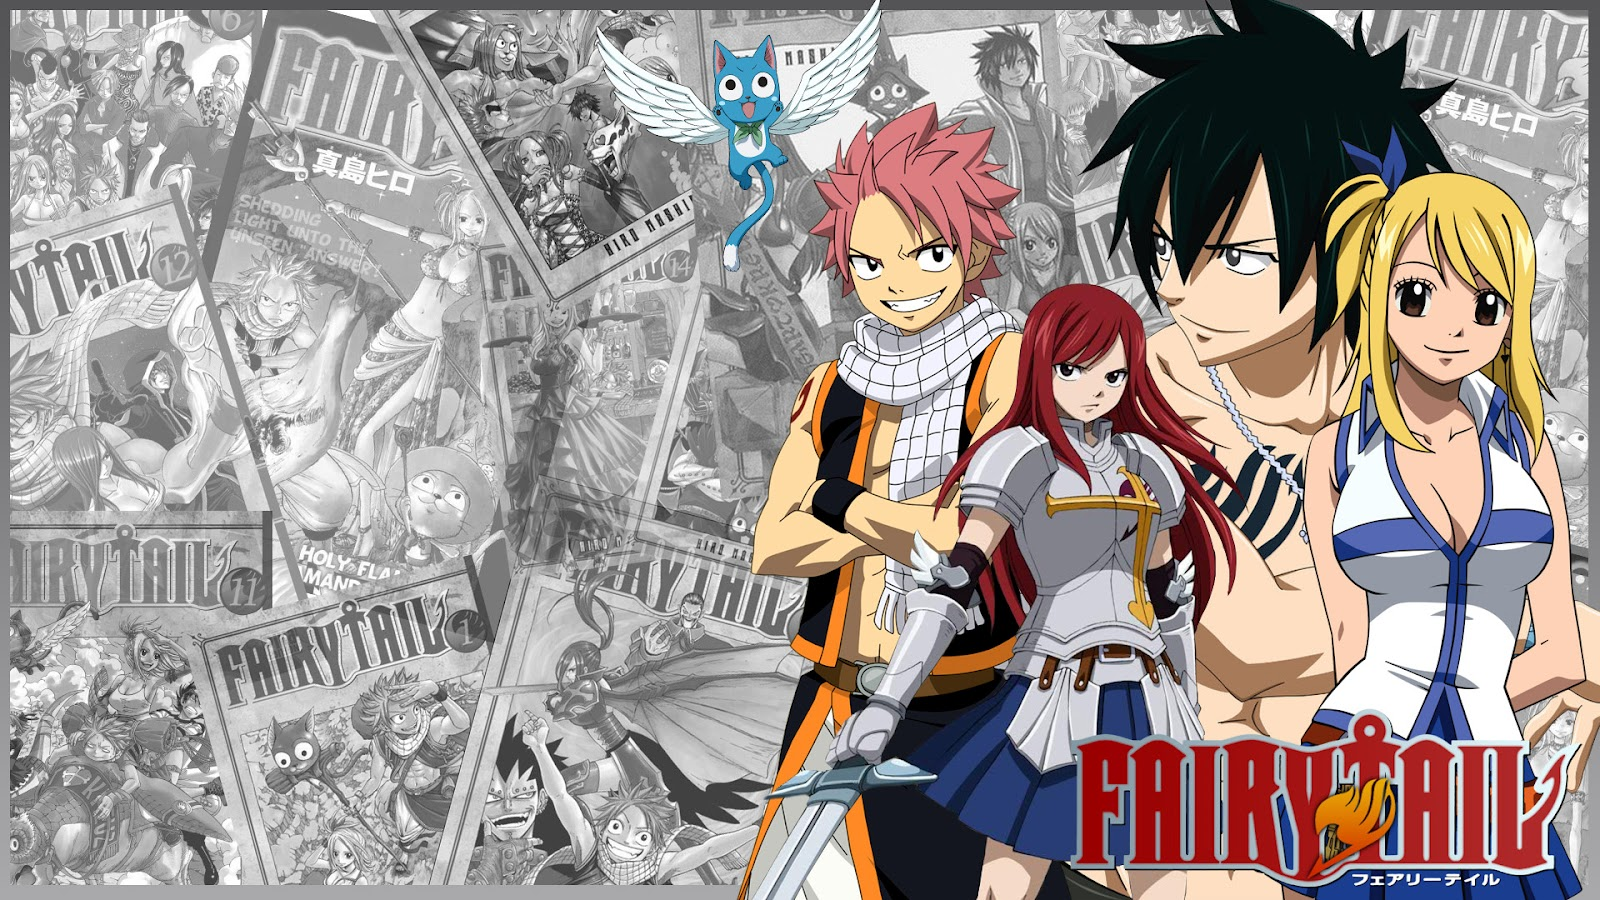 Free Download Fairy Tail Wallpaper 2 Fairy Tail Wallpaper 3 Fairy